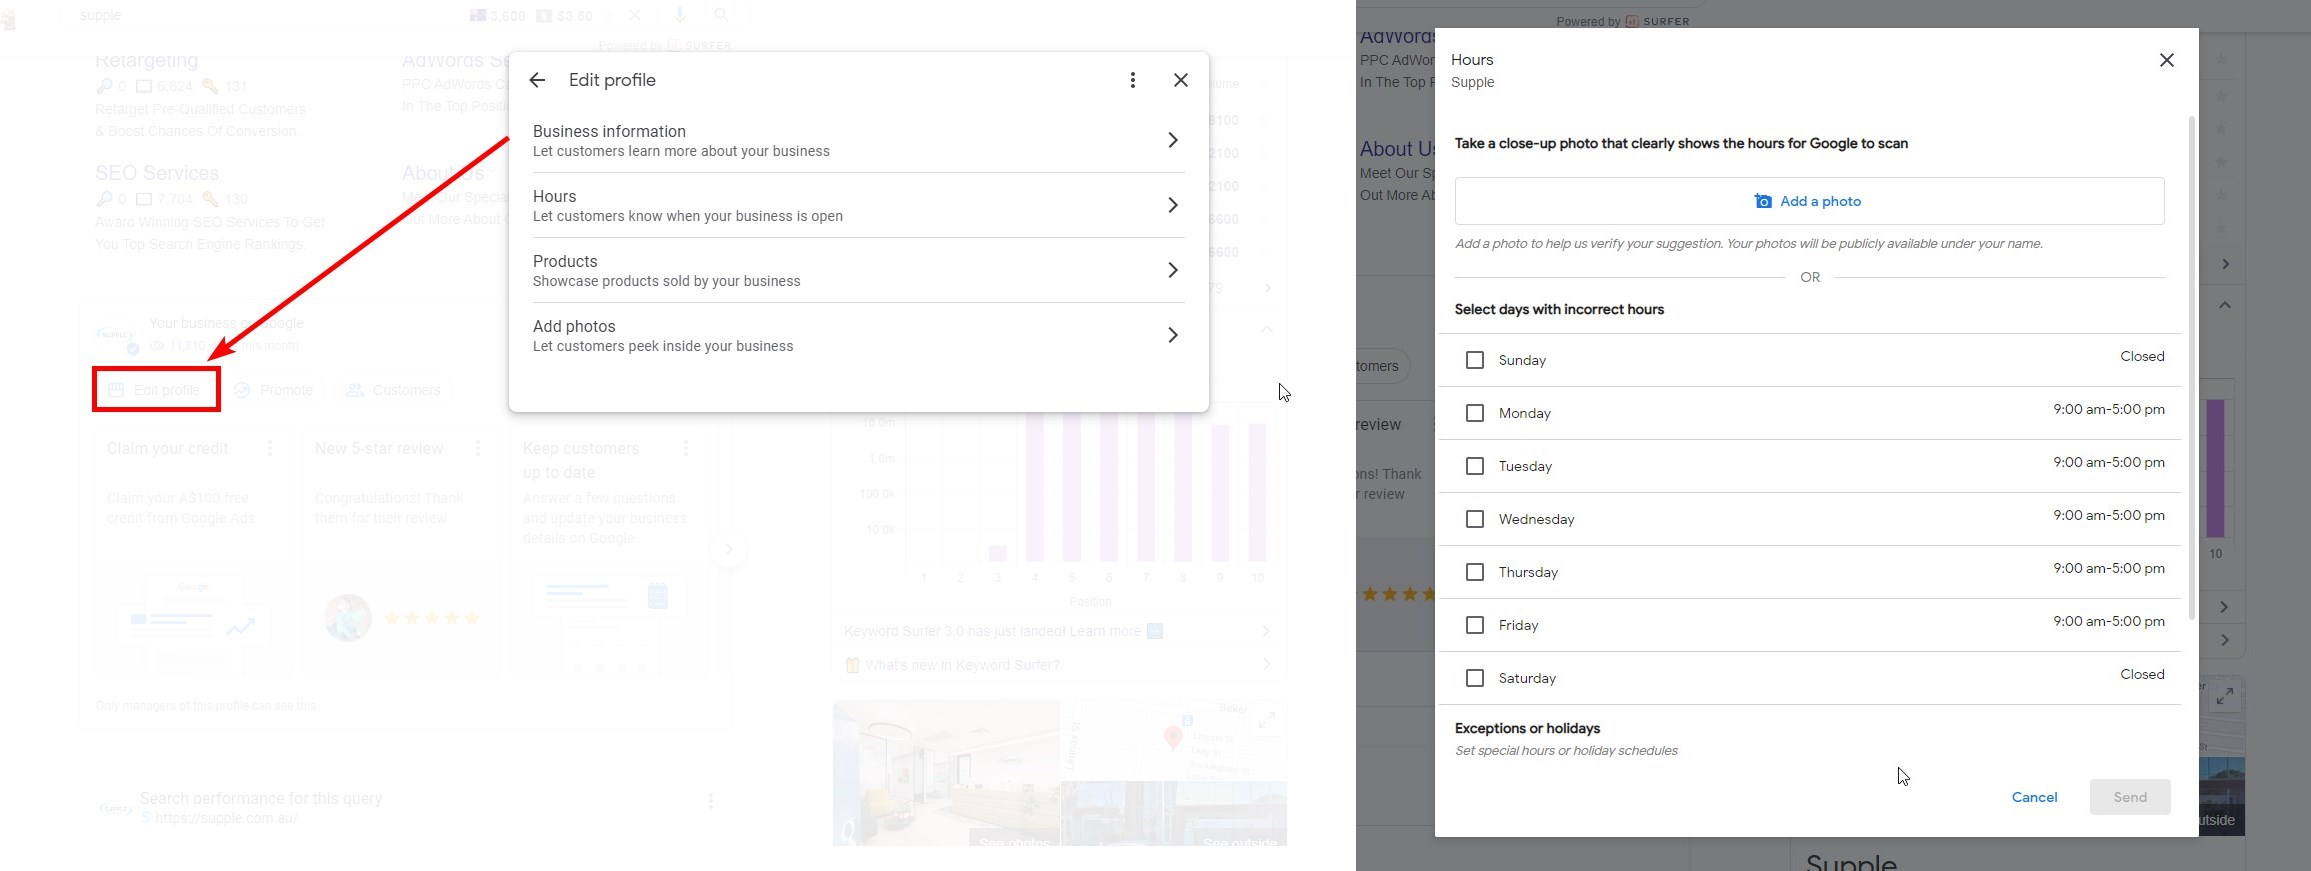 GMB Owners Can Now Update Business Info, Hours And Even Upload Photos Right From Google Search